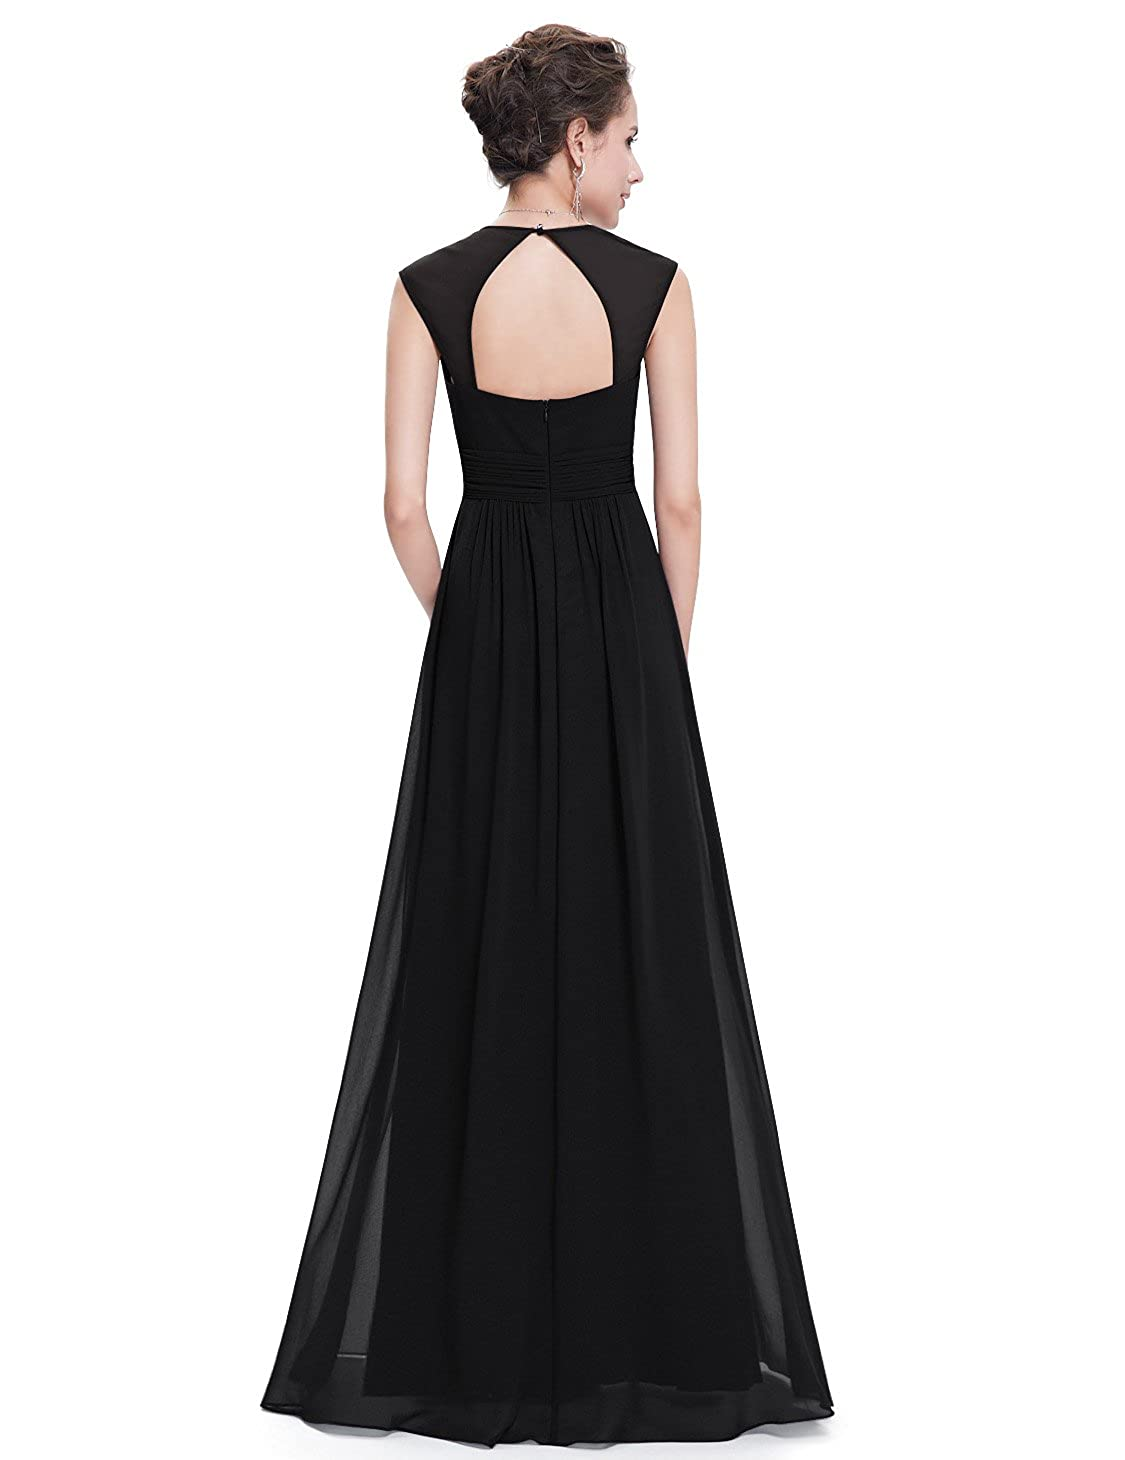 3f3e313afc8 Ever-Pretty Women s Elegant V-Neck Sleeveless Formal Long Evening Dress  08697 at Amazon Women s Clothing store